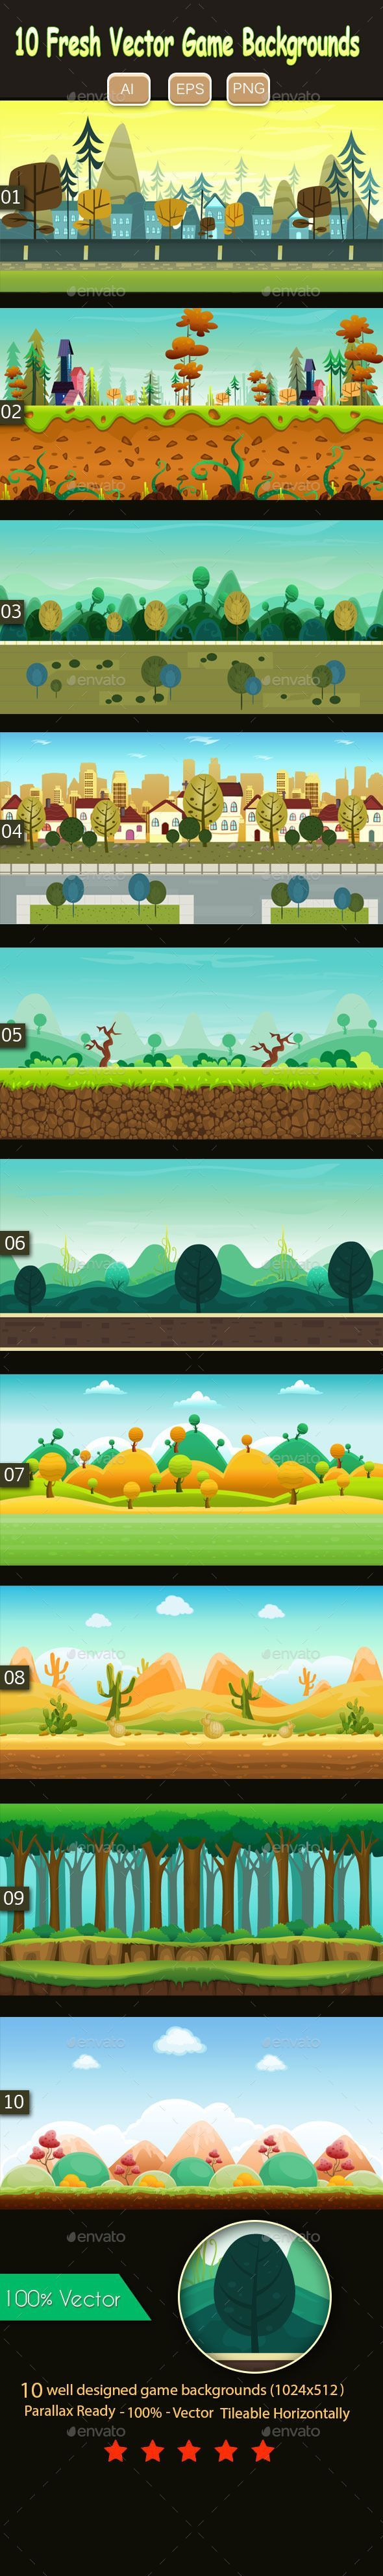 10 fresh vector game backgrounds-# 10fresh #background #fresh #game #vector   – Home decor